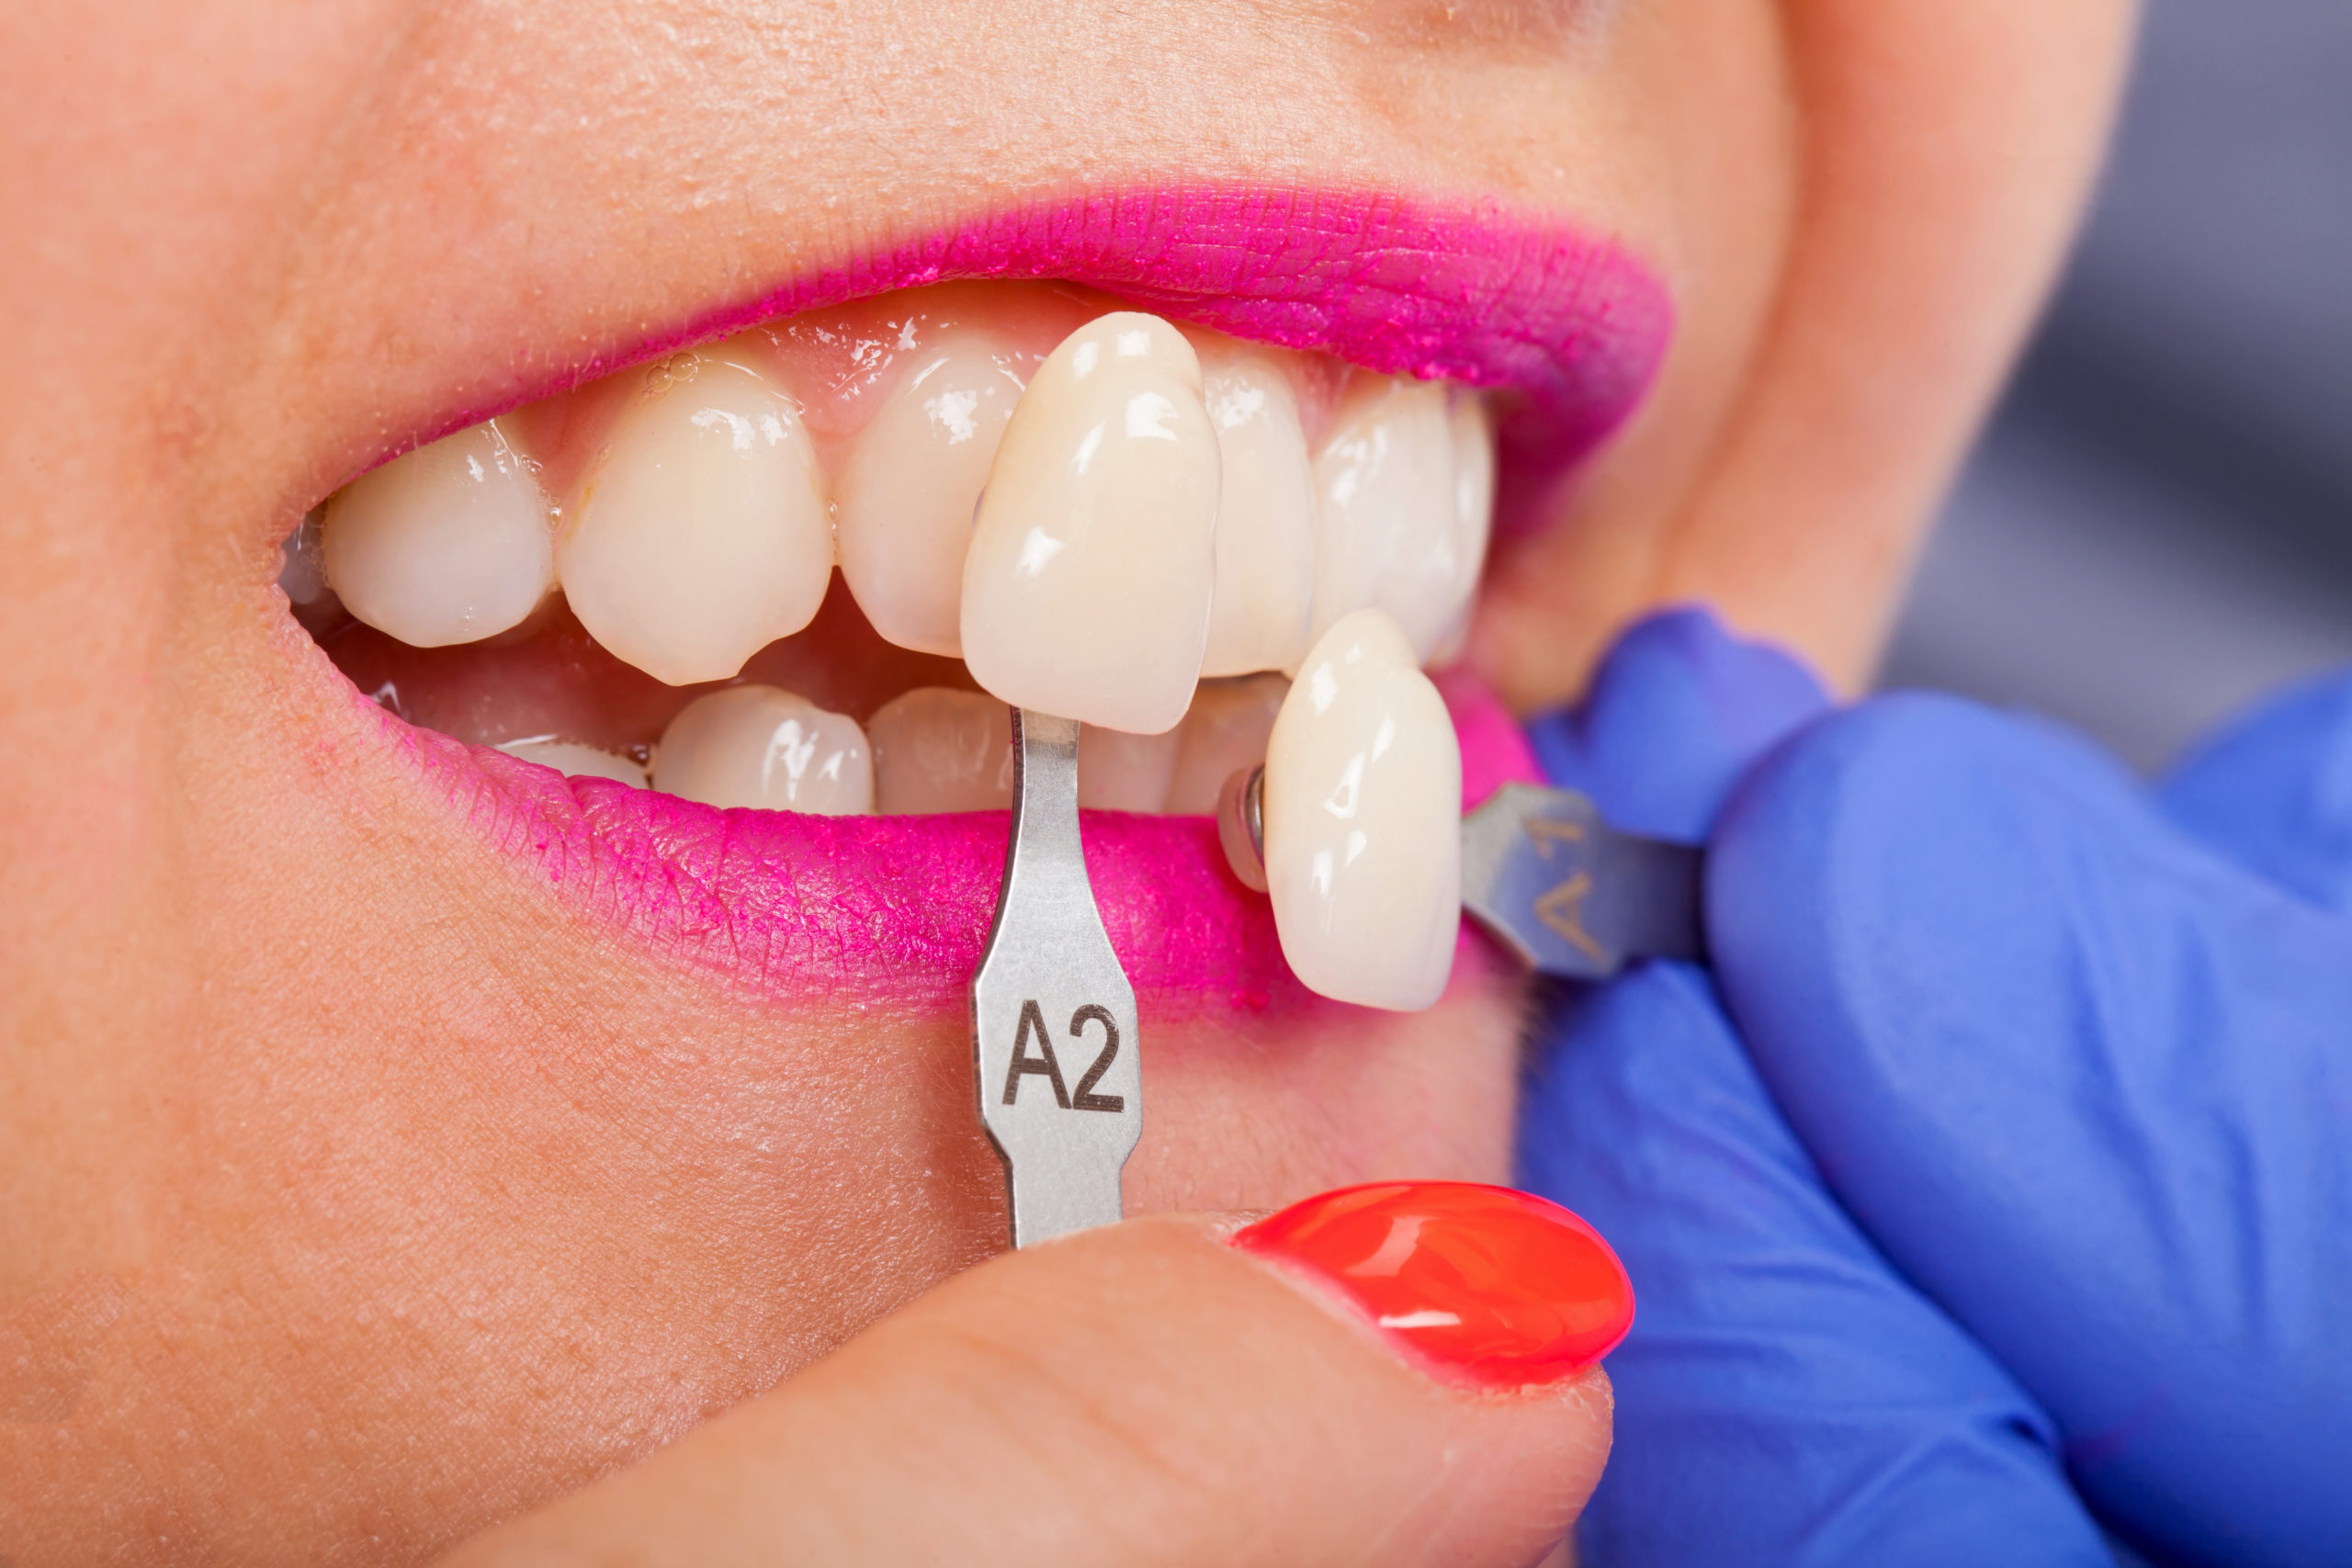 What Are Dental Veneers Used For? kensington court clinic